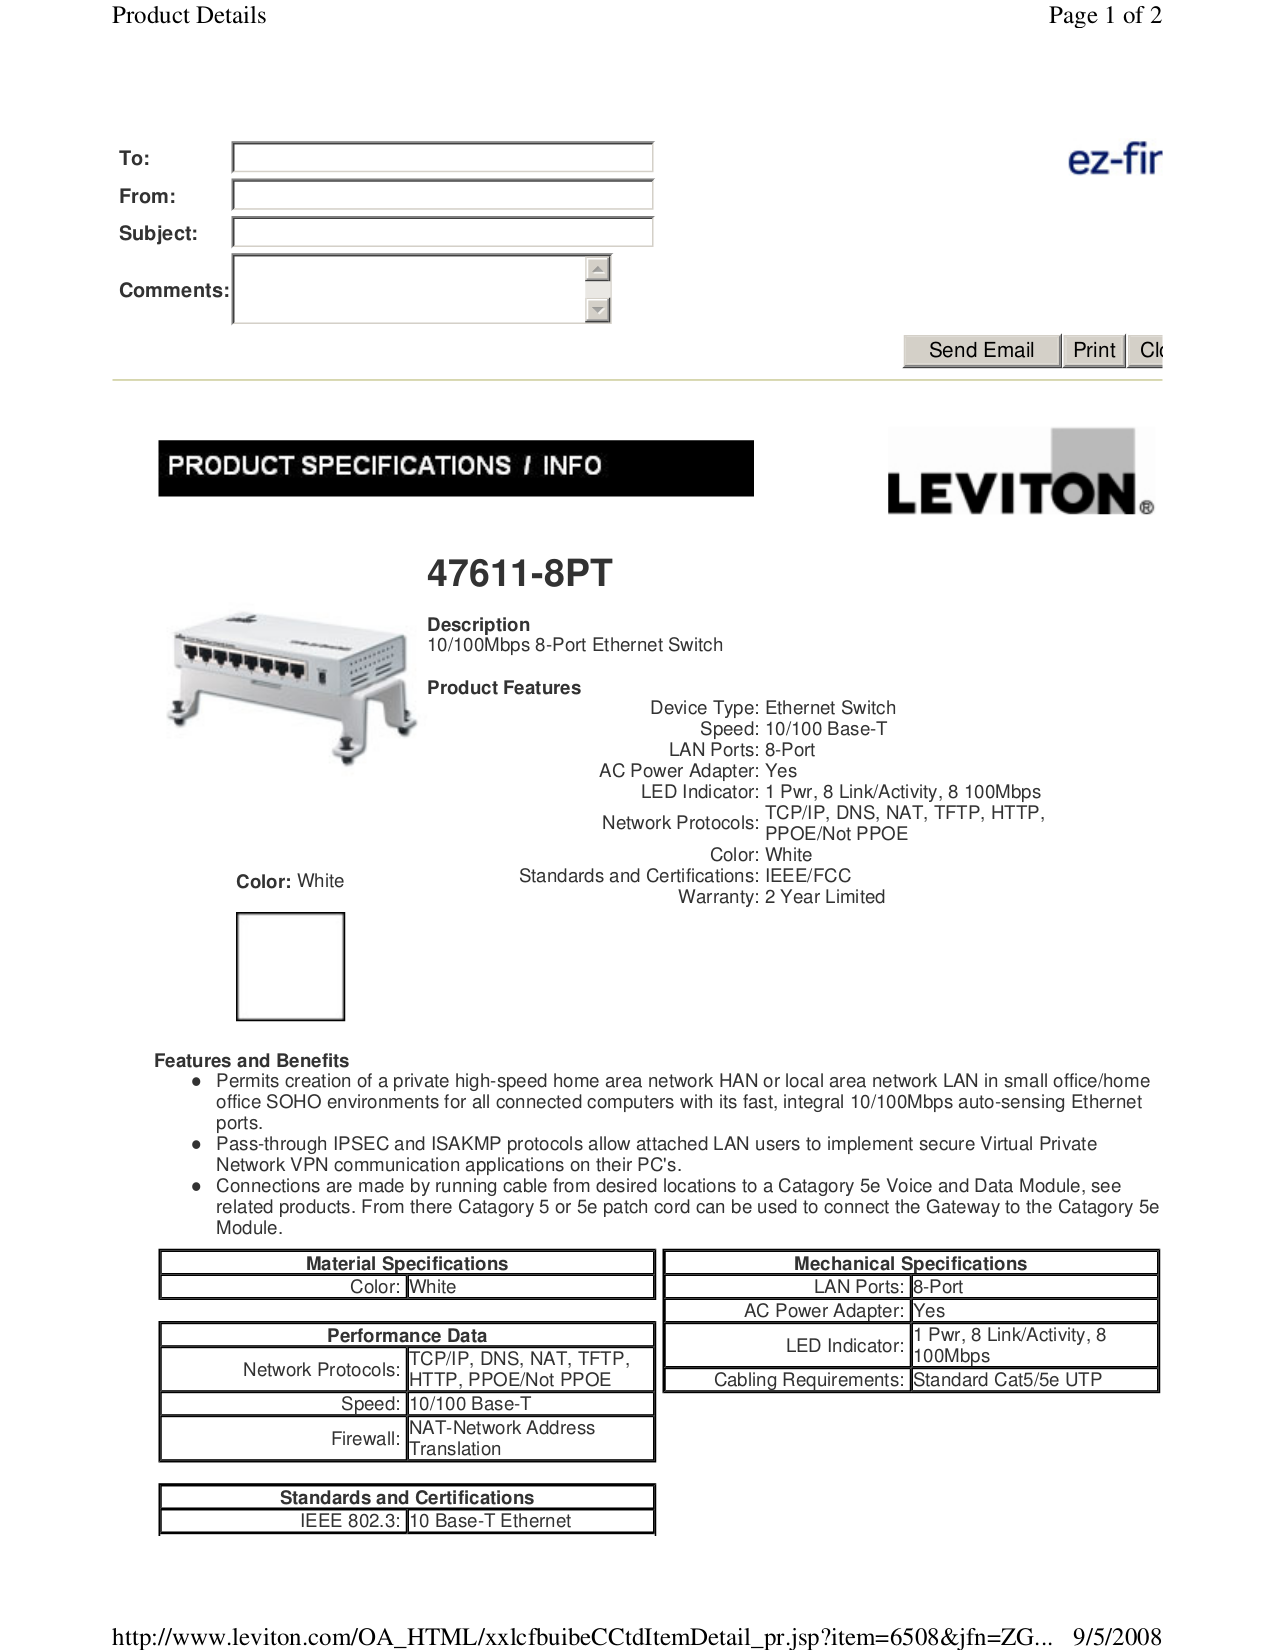 Download free pdf for Leviton 47611-8PT Switch manual